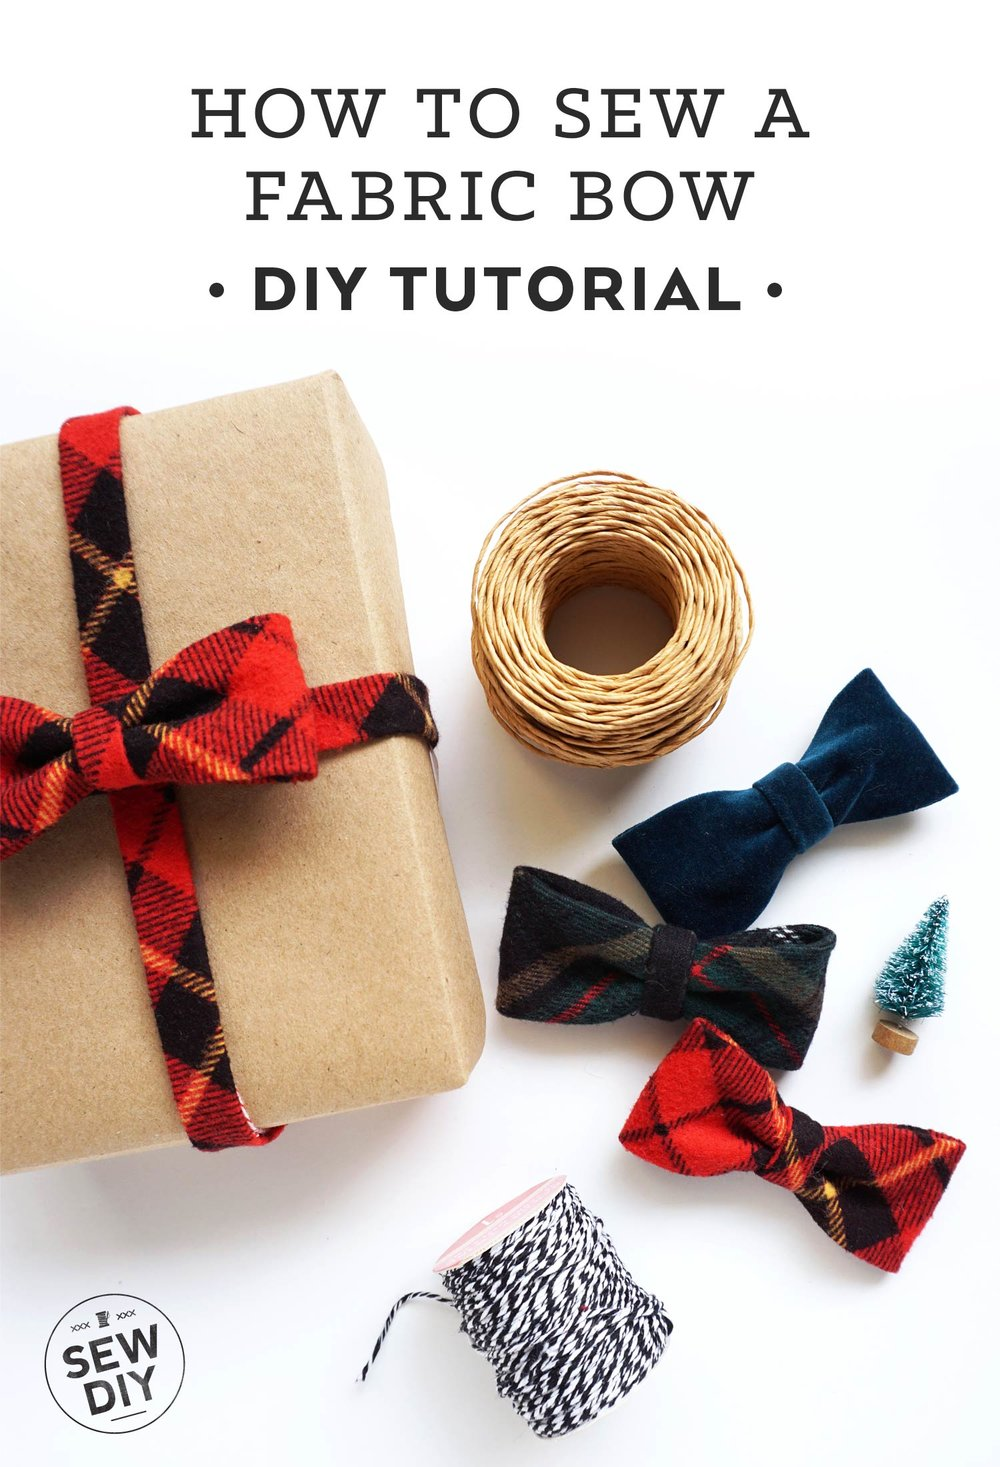 How to Sew a Fabric Bow | Sew DIY